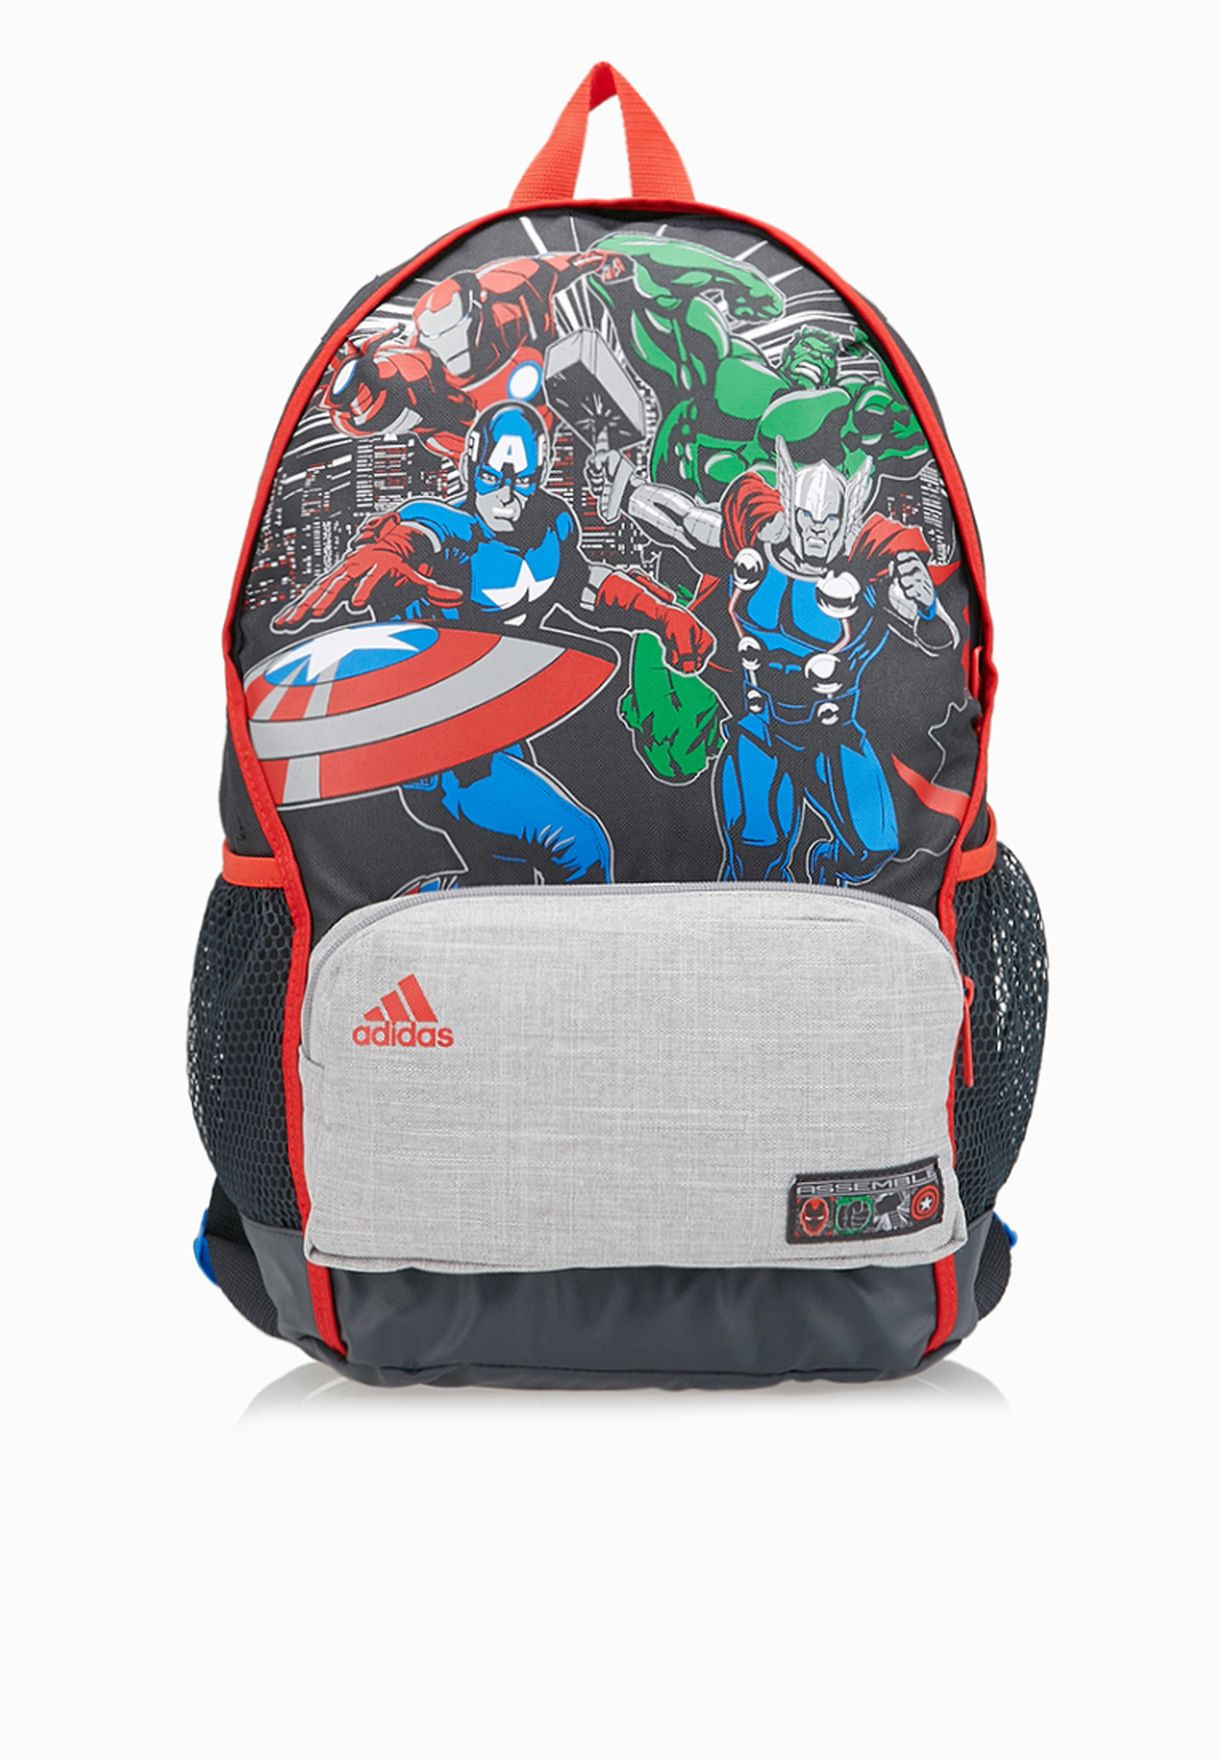 Shop adidas prints The Avengers Kids Backpack S14690 for Kids in UAE ... 20cab026919f7